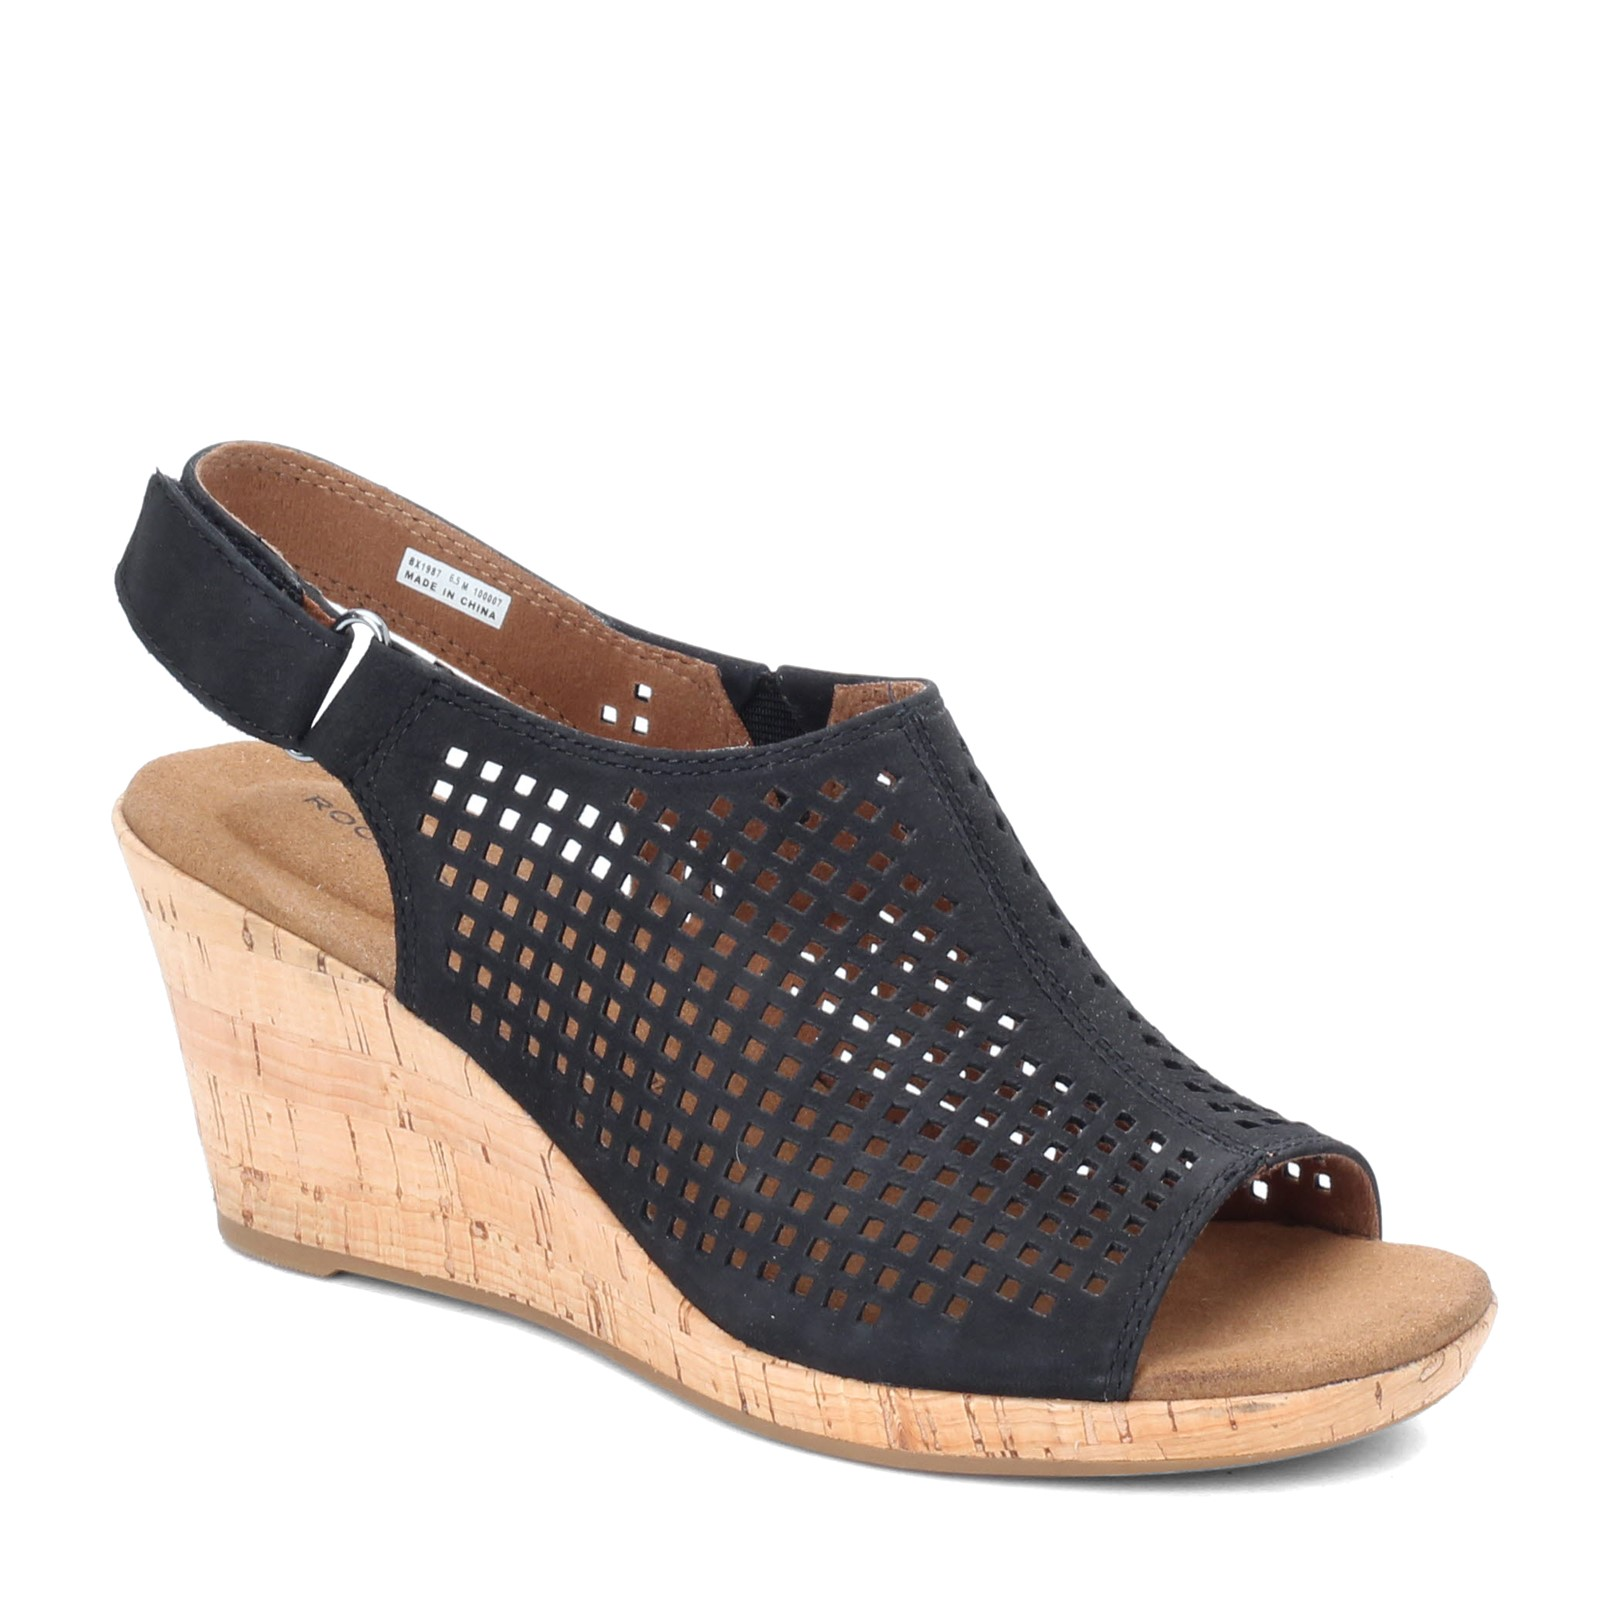 Women's Rockport, Briah Perf Sling Wedge